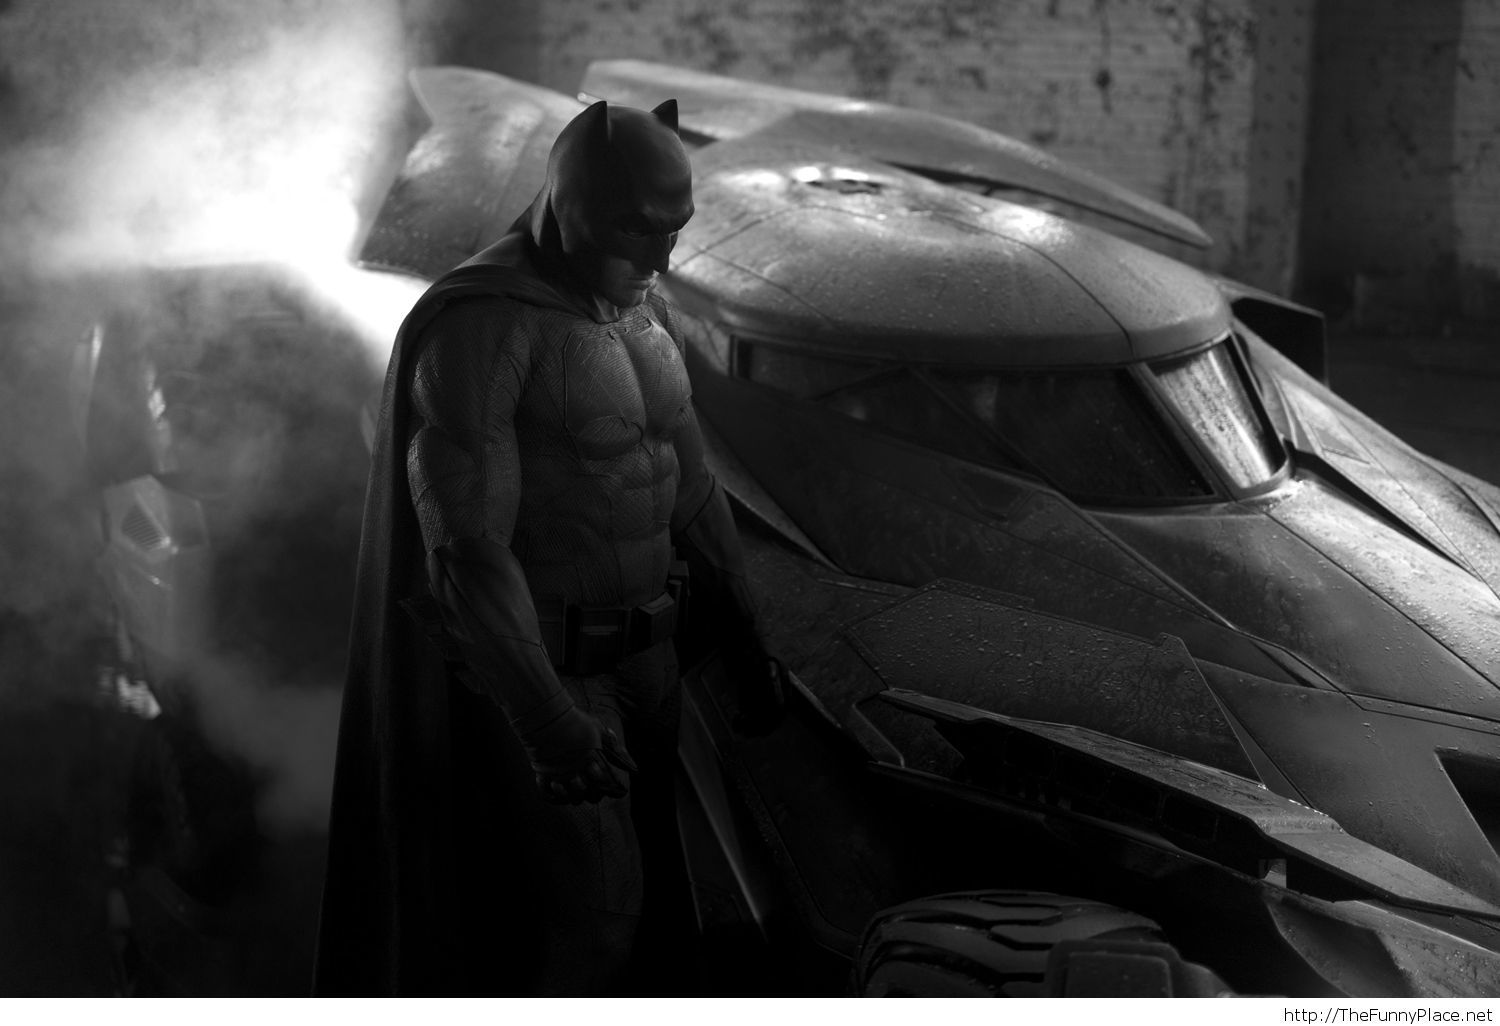 Batfleck and the Batmobile